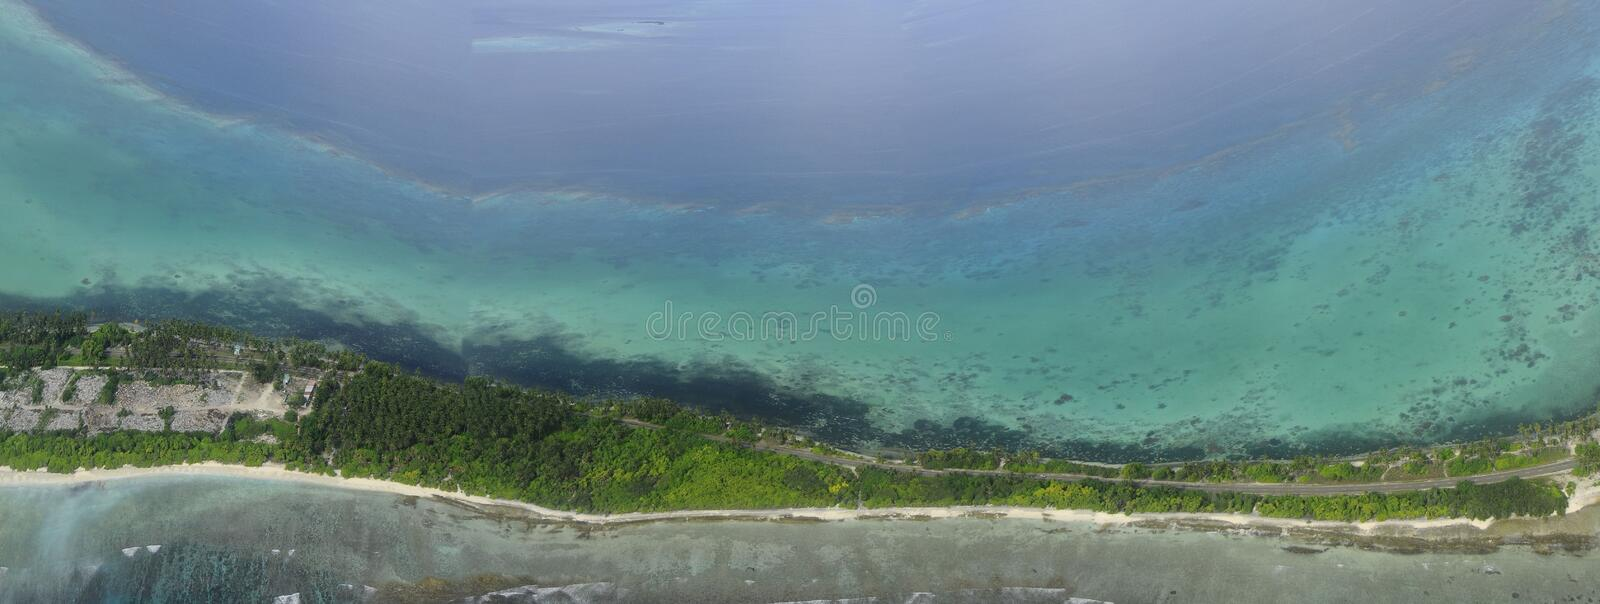 Addu Atoll or the Seenu Atoll, The south Most atoll of the Maldives islands. Addu Atoll, previously also known as Seenu Atoll, is the southernmost atoll of the royalty free stock photos